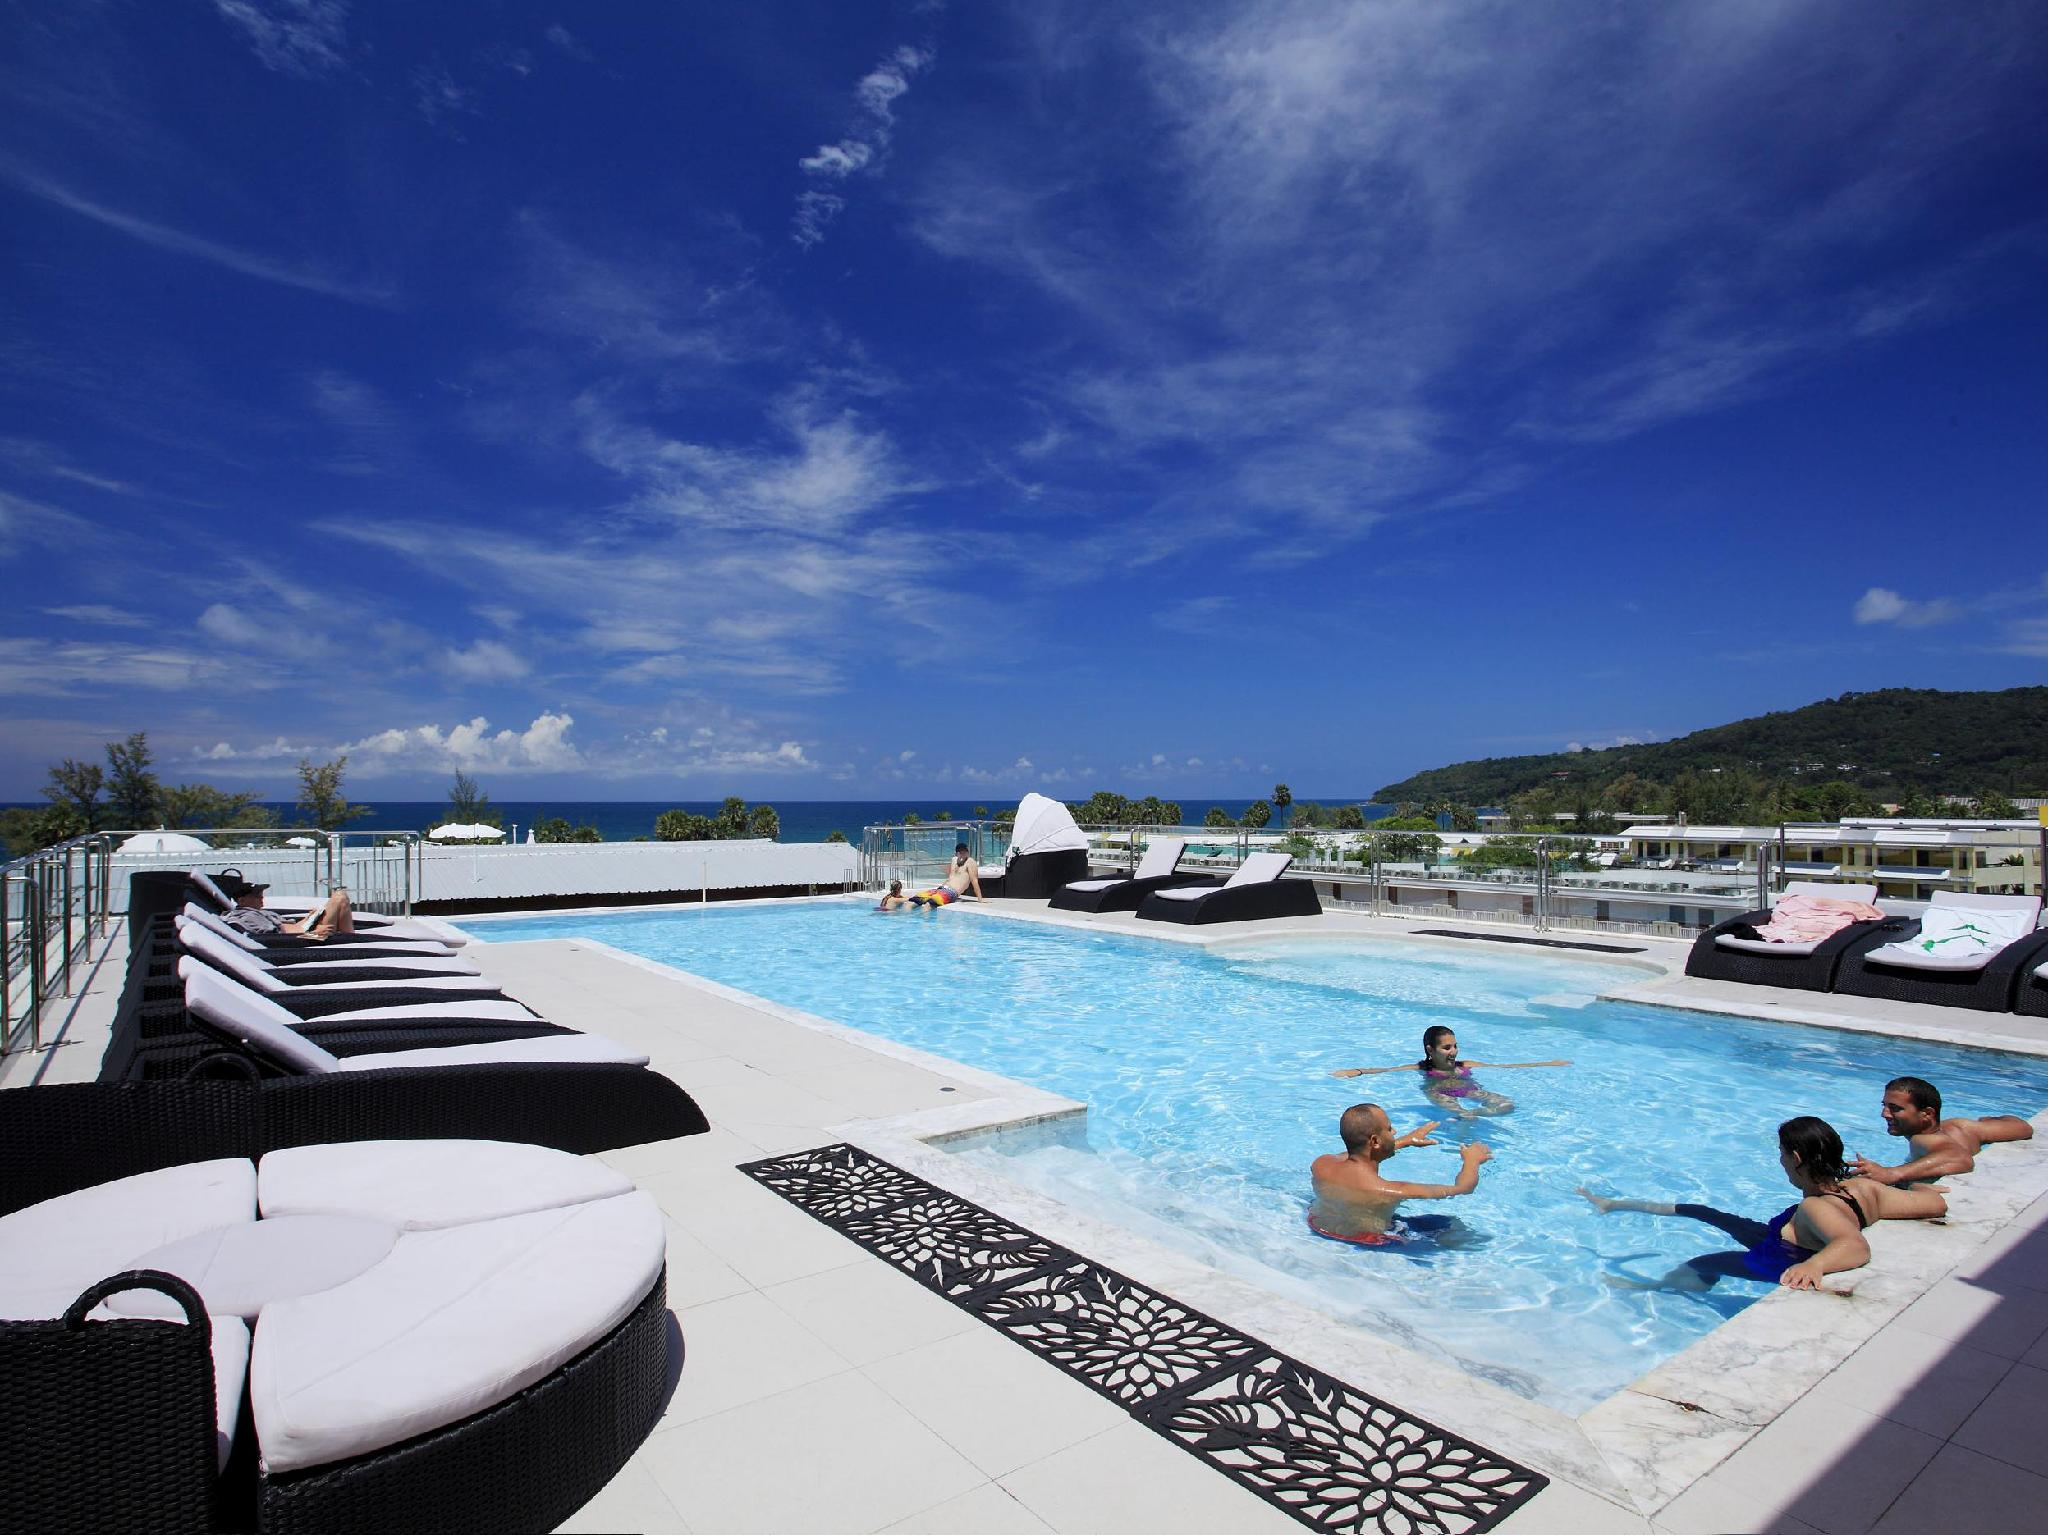 Grand Sunset Hotel Puketas